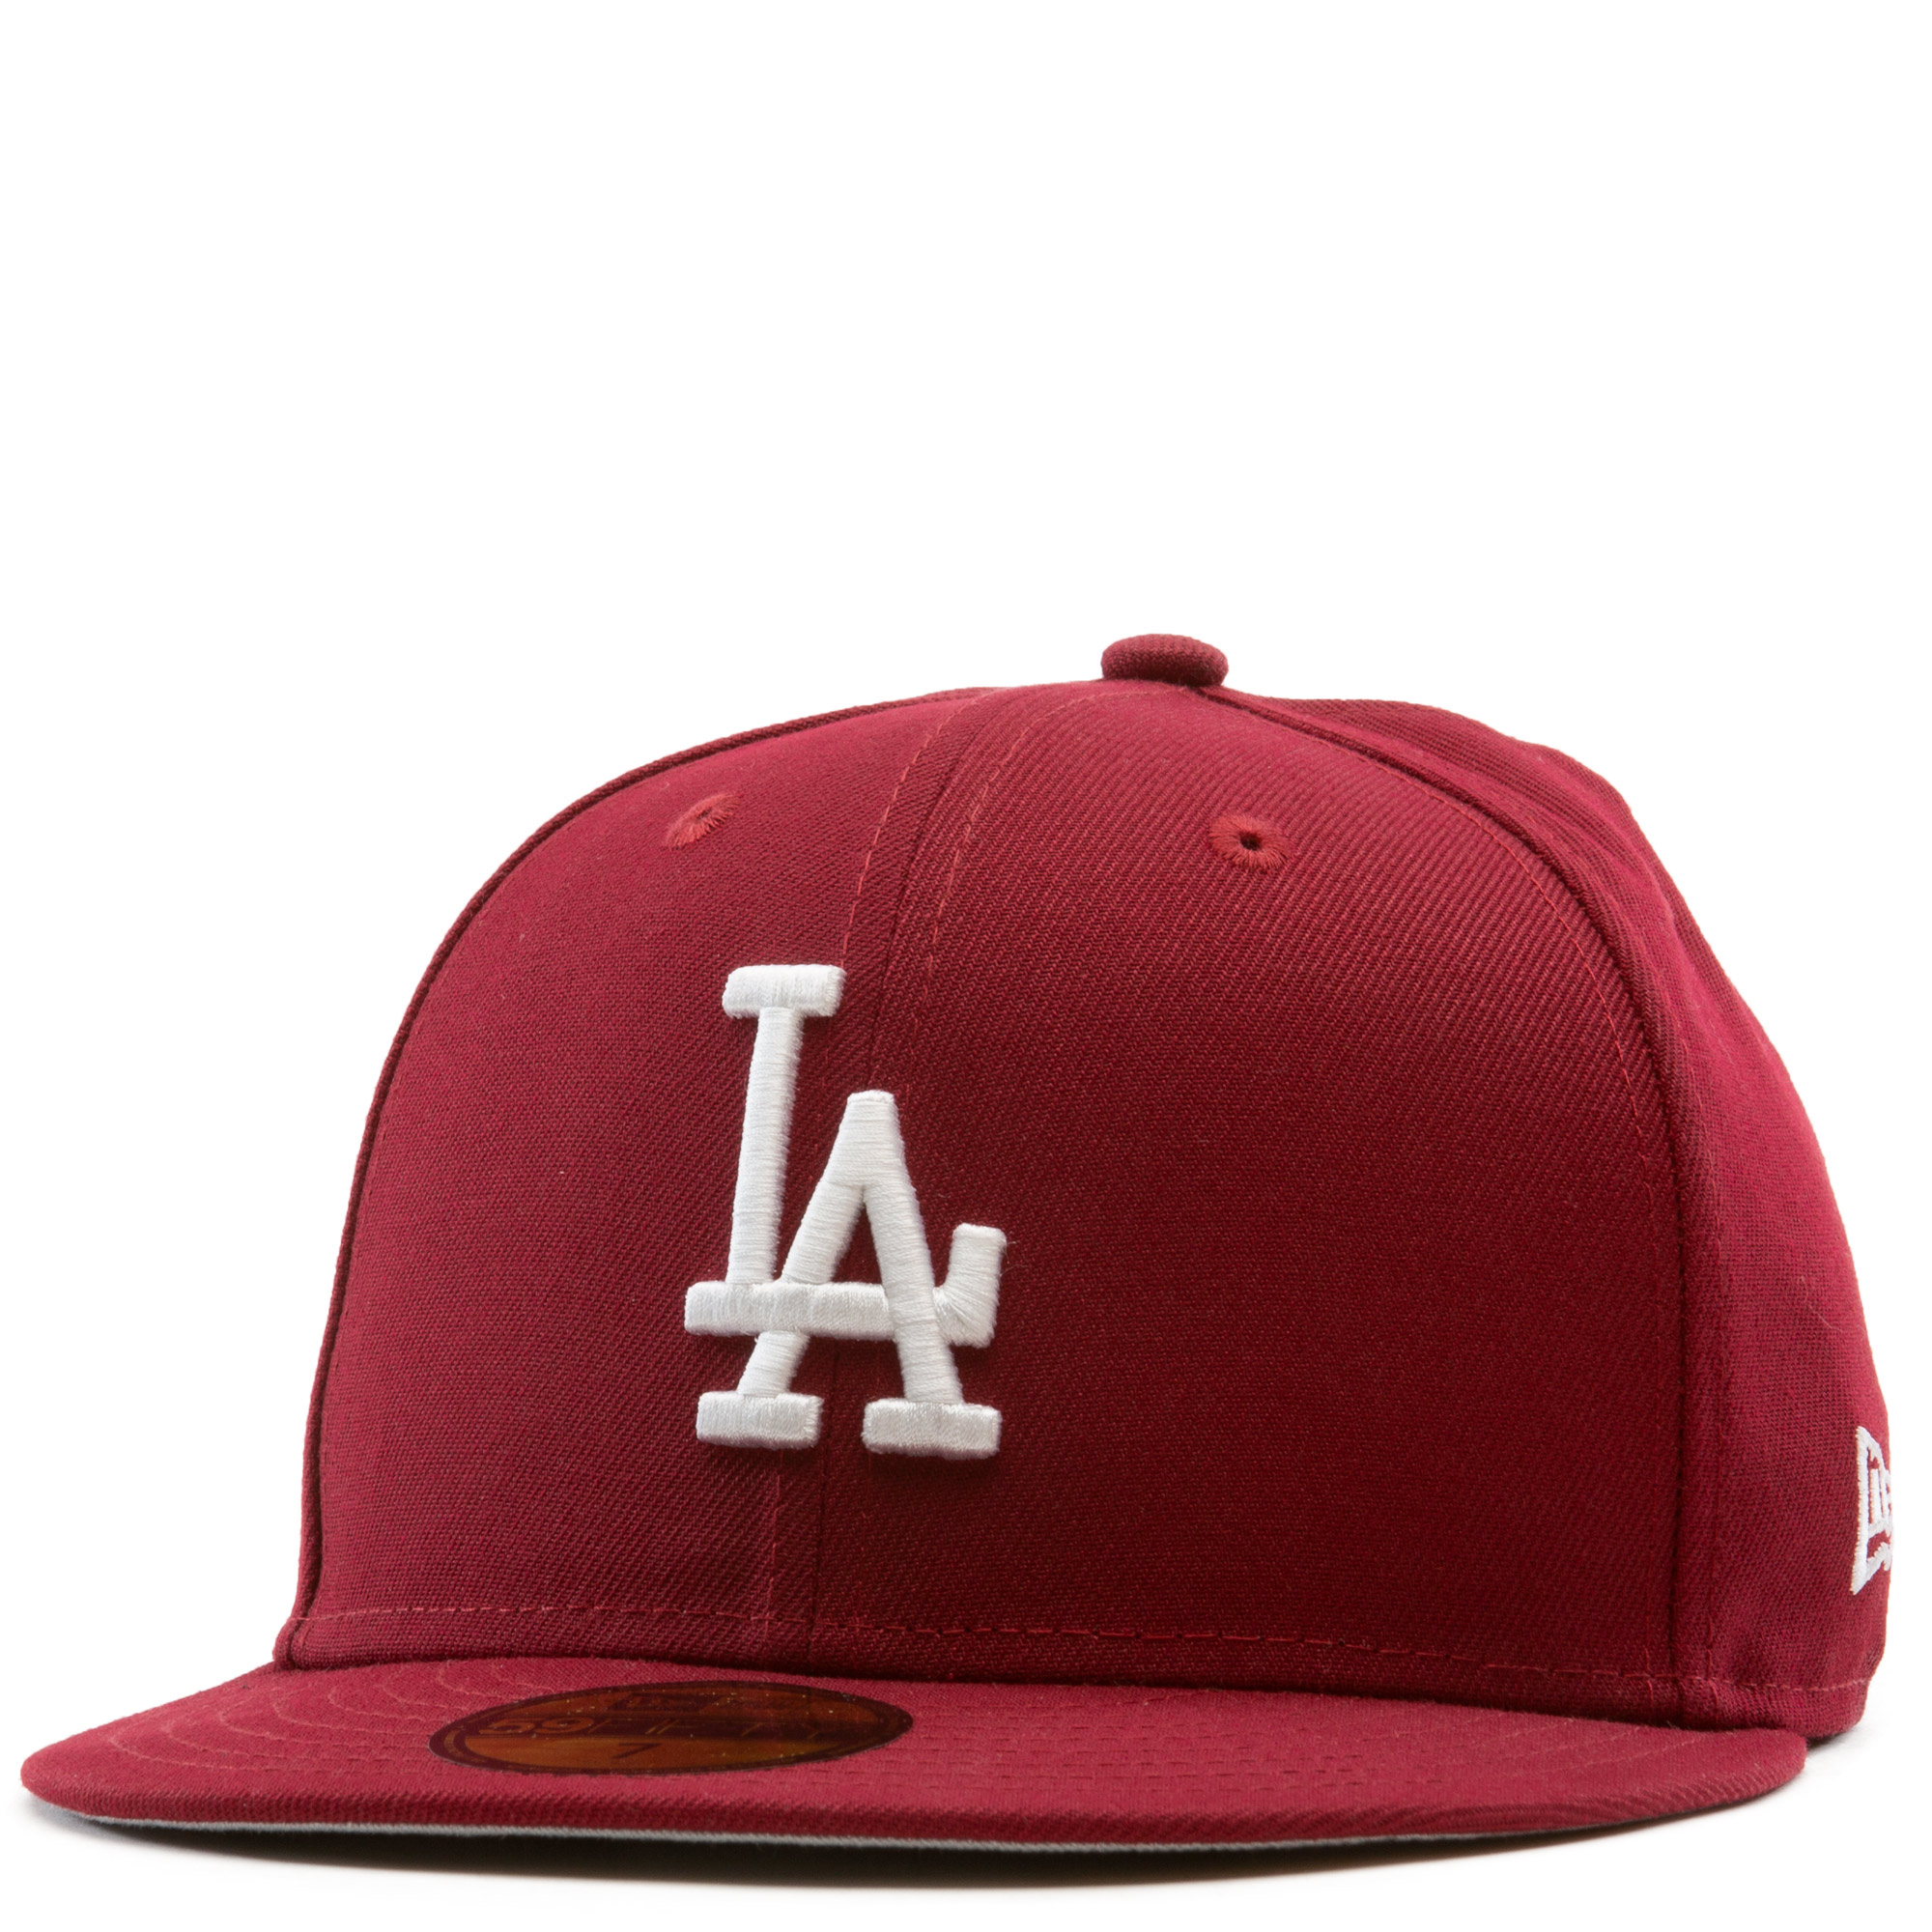 Los Angeles Dodgers MLB Basic Fitted Hat